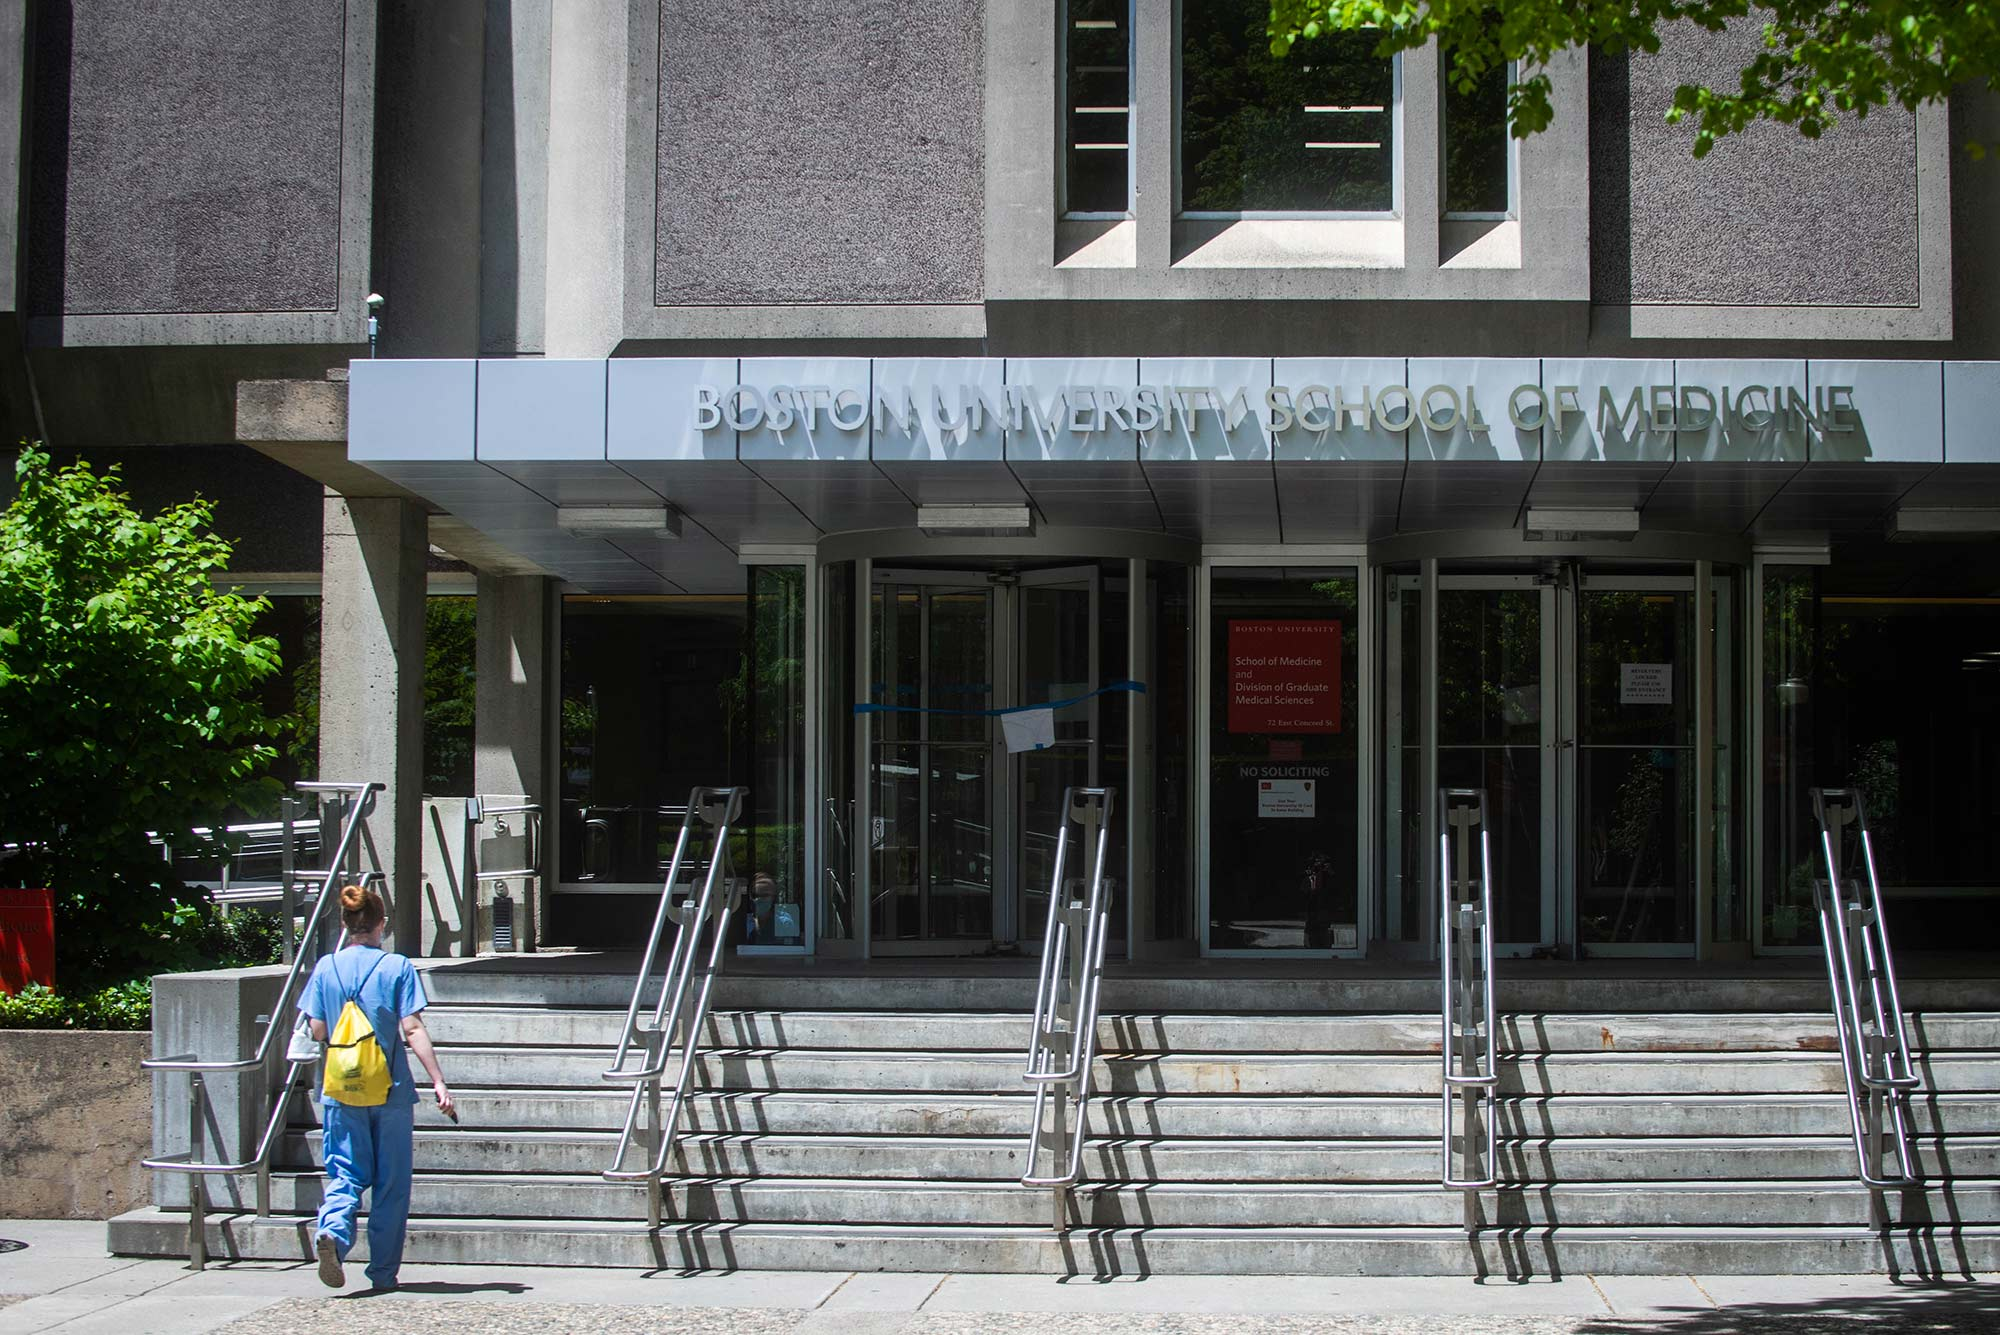 Photo of the exterior of the Boston University School of Medicine on Tuesday, May 19, 2020. A person in scrubs wearing a small yellow backpack walks up the stairs towards the front door.